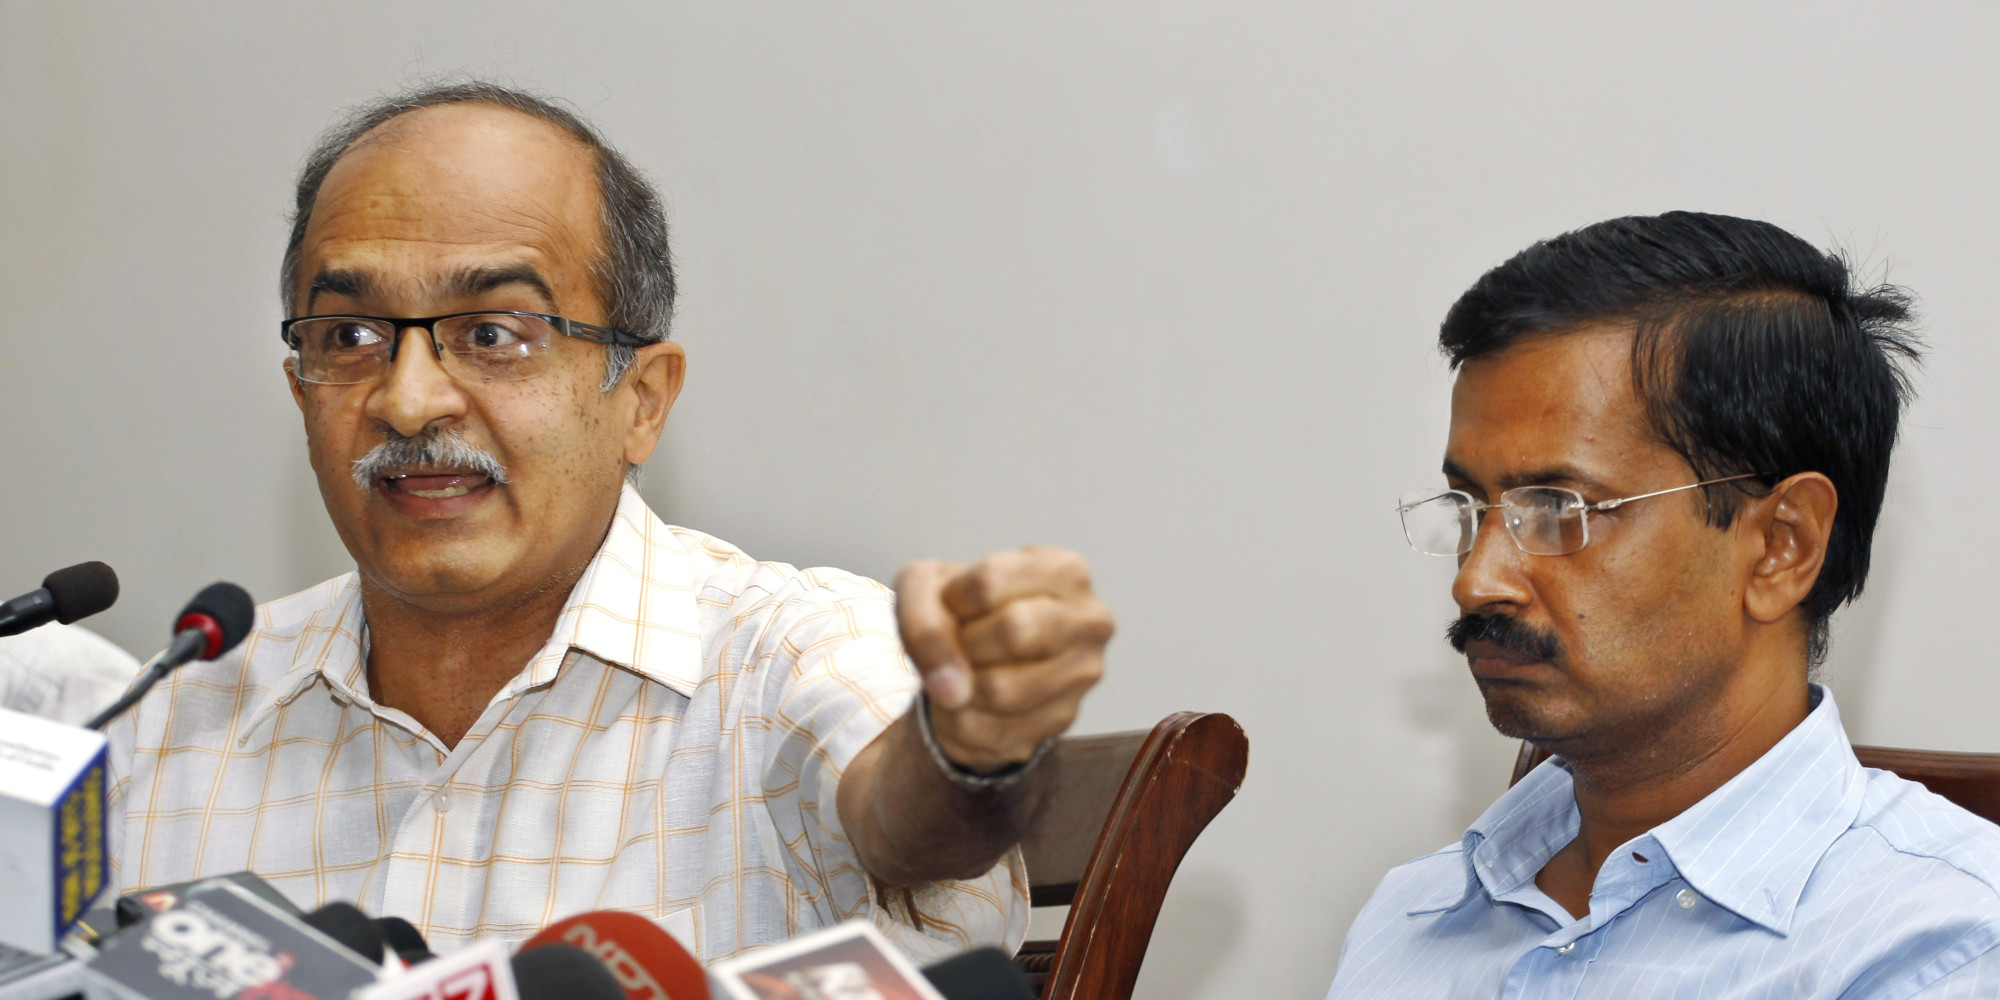 Prashant Bhushan shows Kejriwal the reality in open letter, says history won't forgive Kejriwal